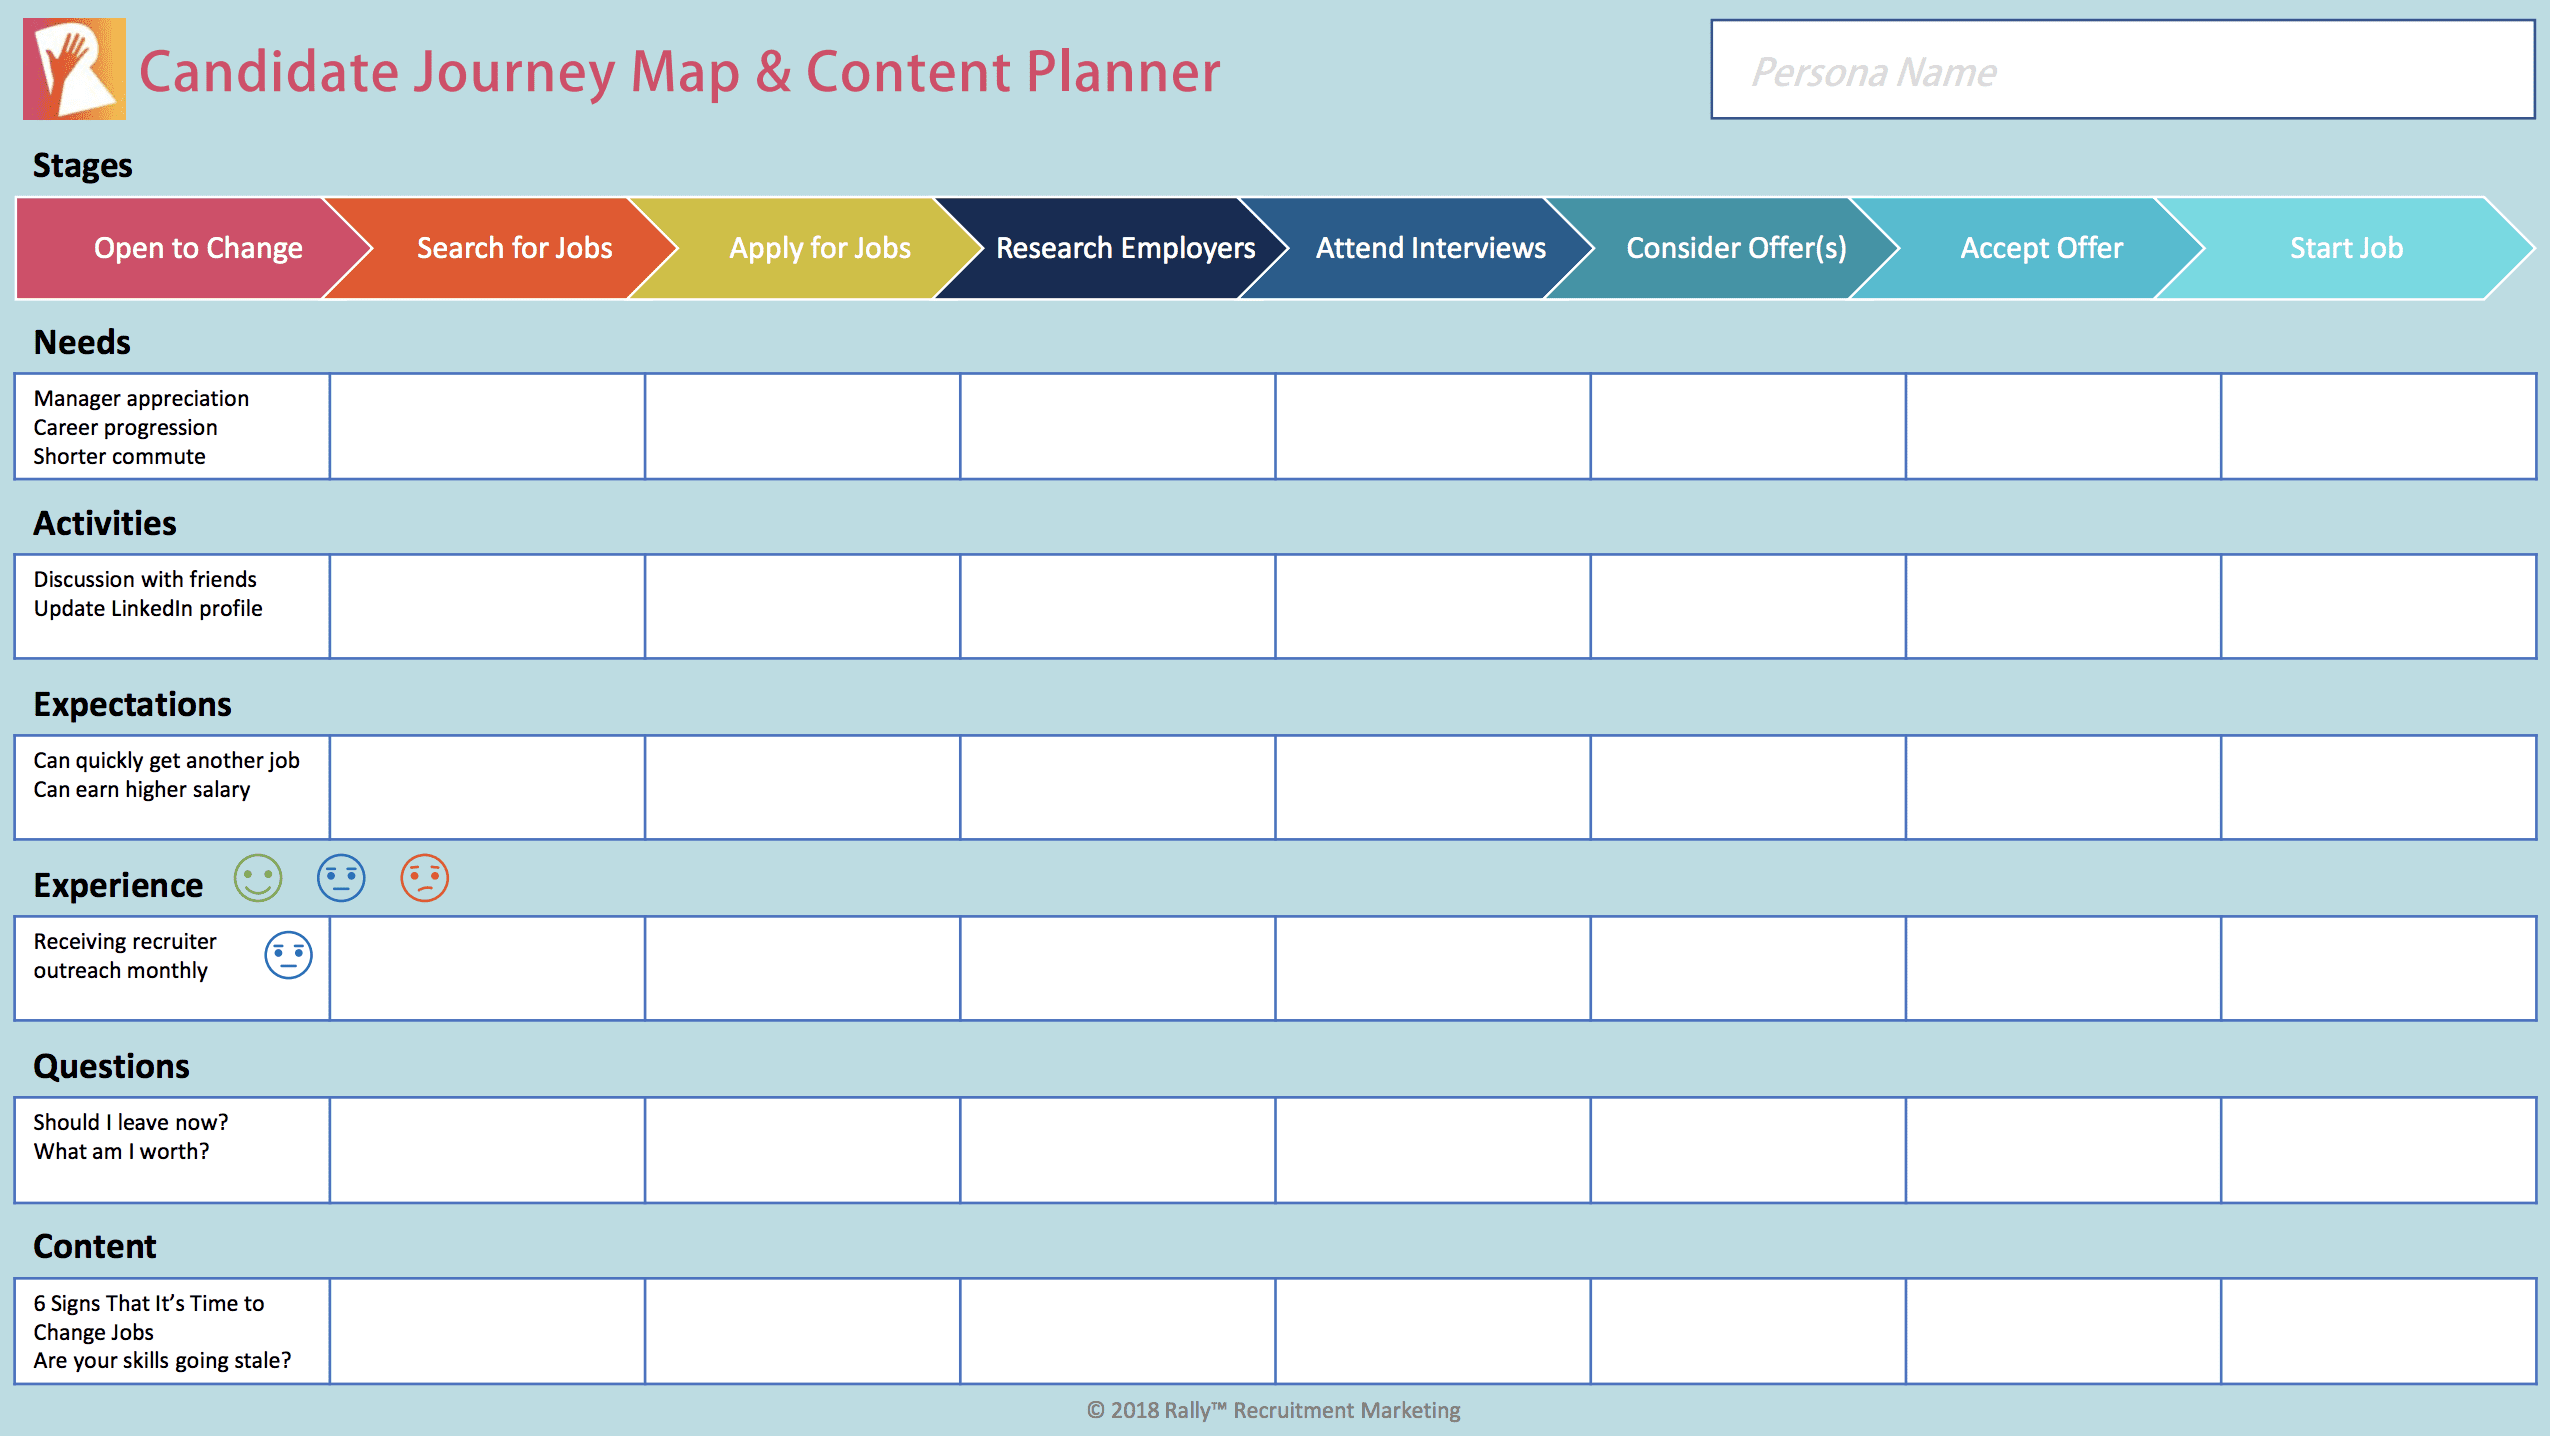 Why you should create a candidate journey map asap template pro tip before you build out a candidate journey map its a good idea to spend a bit of time fleshing out whos journey your tracking first by creating maxwellsz